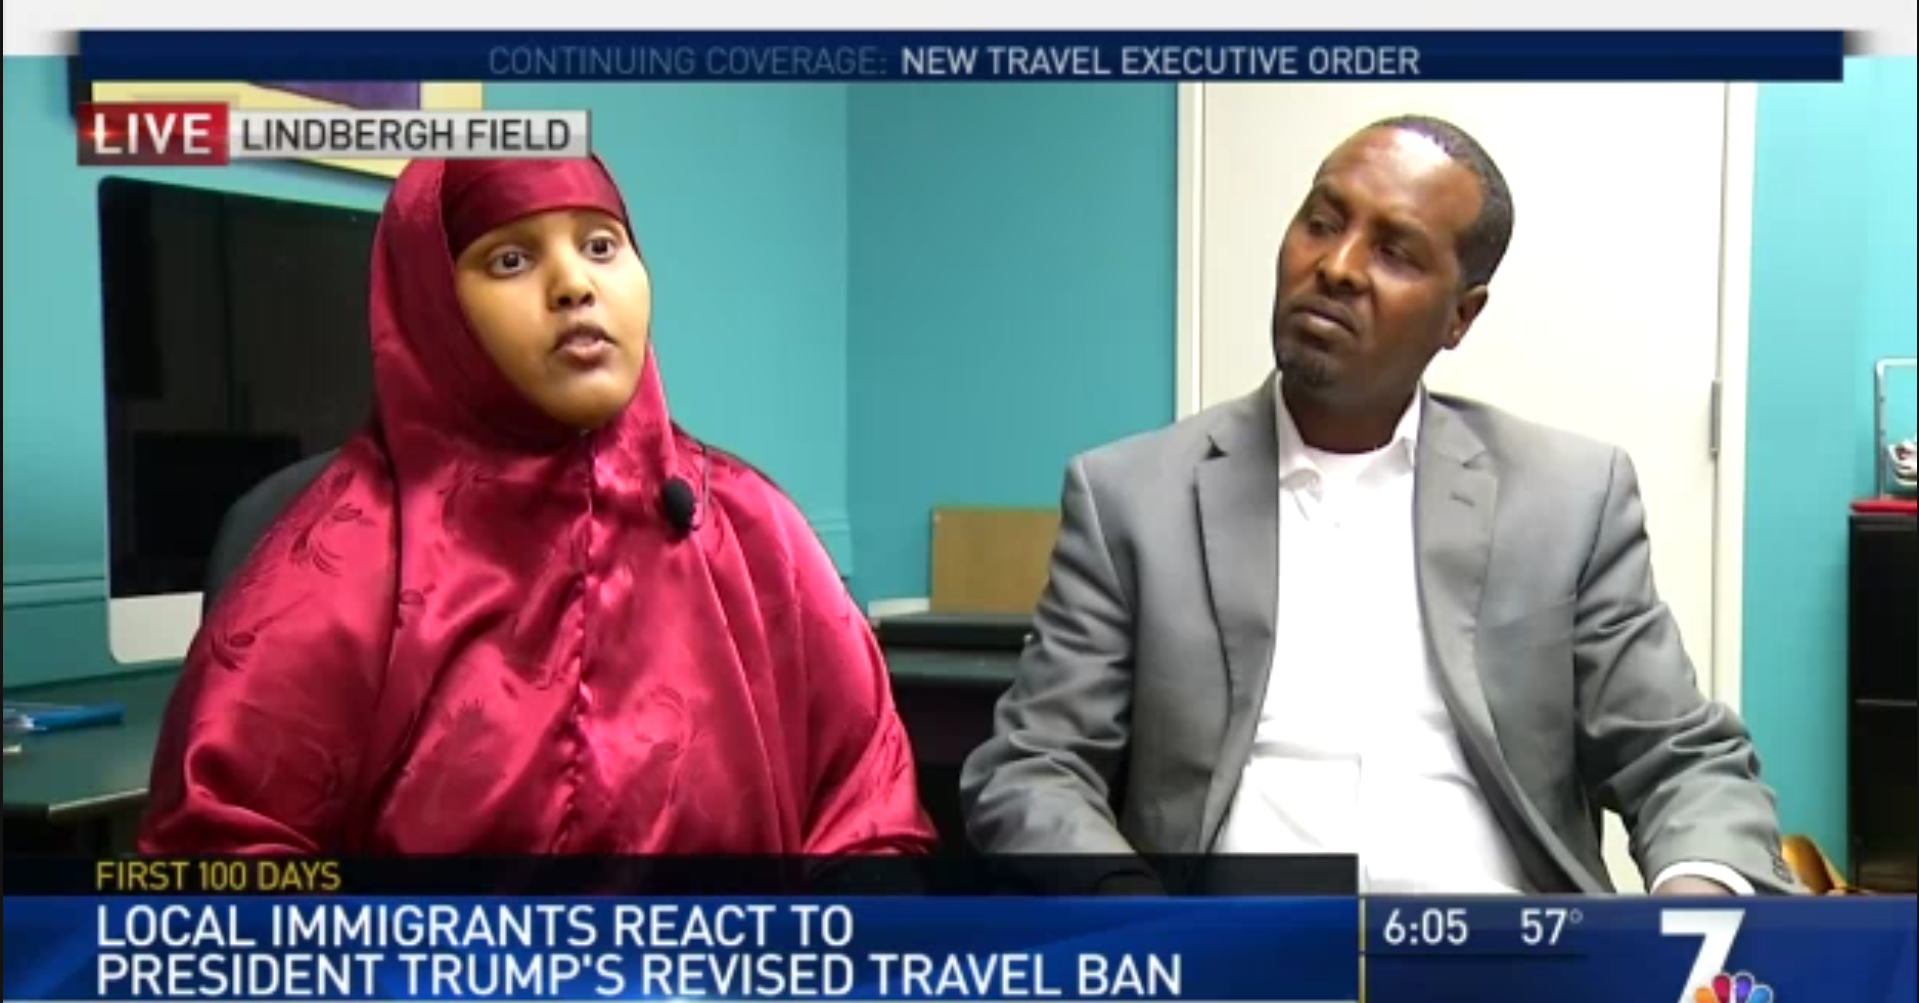 Image source: http://www.nbcsandiego.com/news/local/Local-Immigrants-React-to-President-Trumps-Revised-Travel-Ban-415522953.html